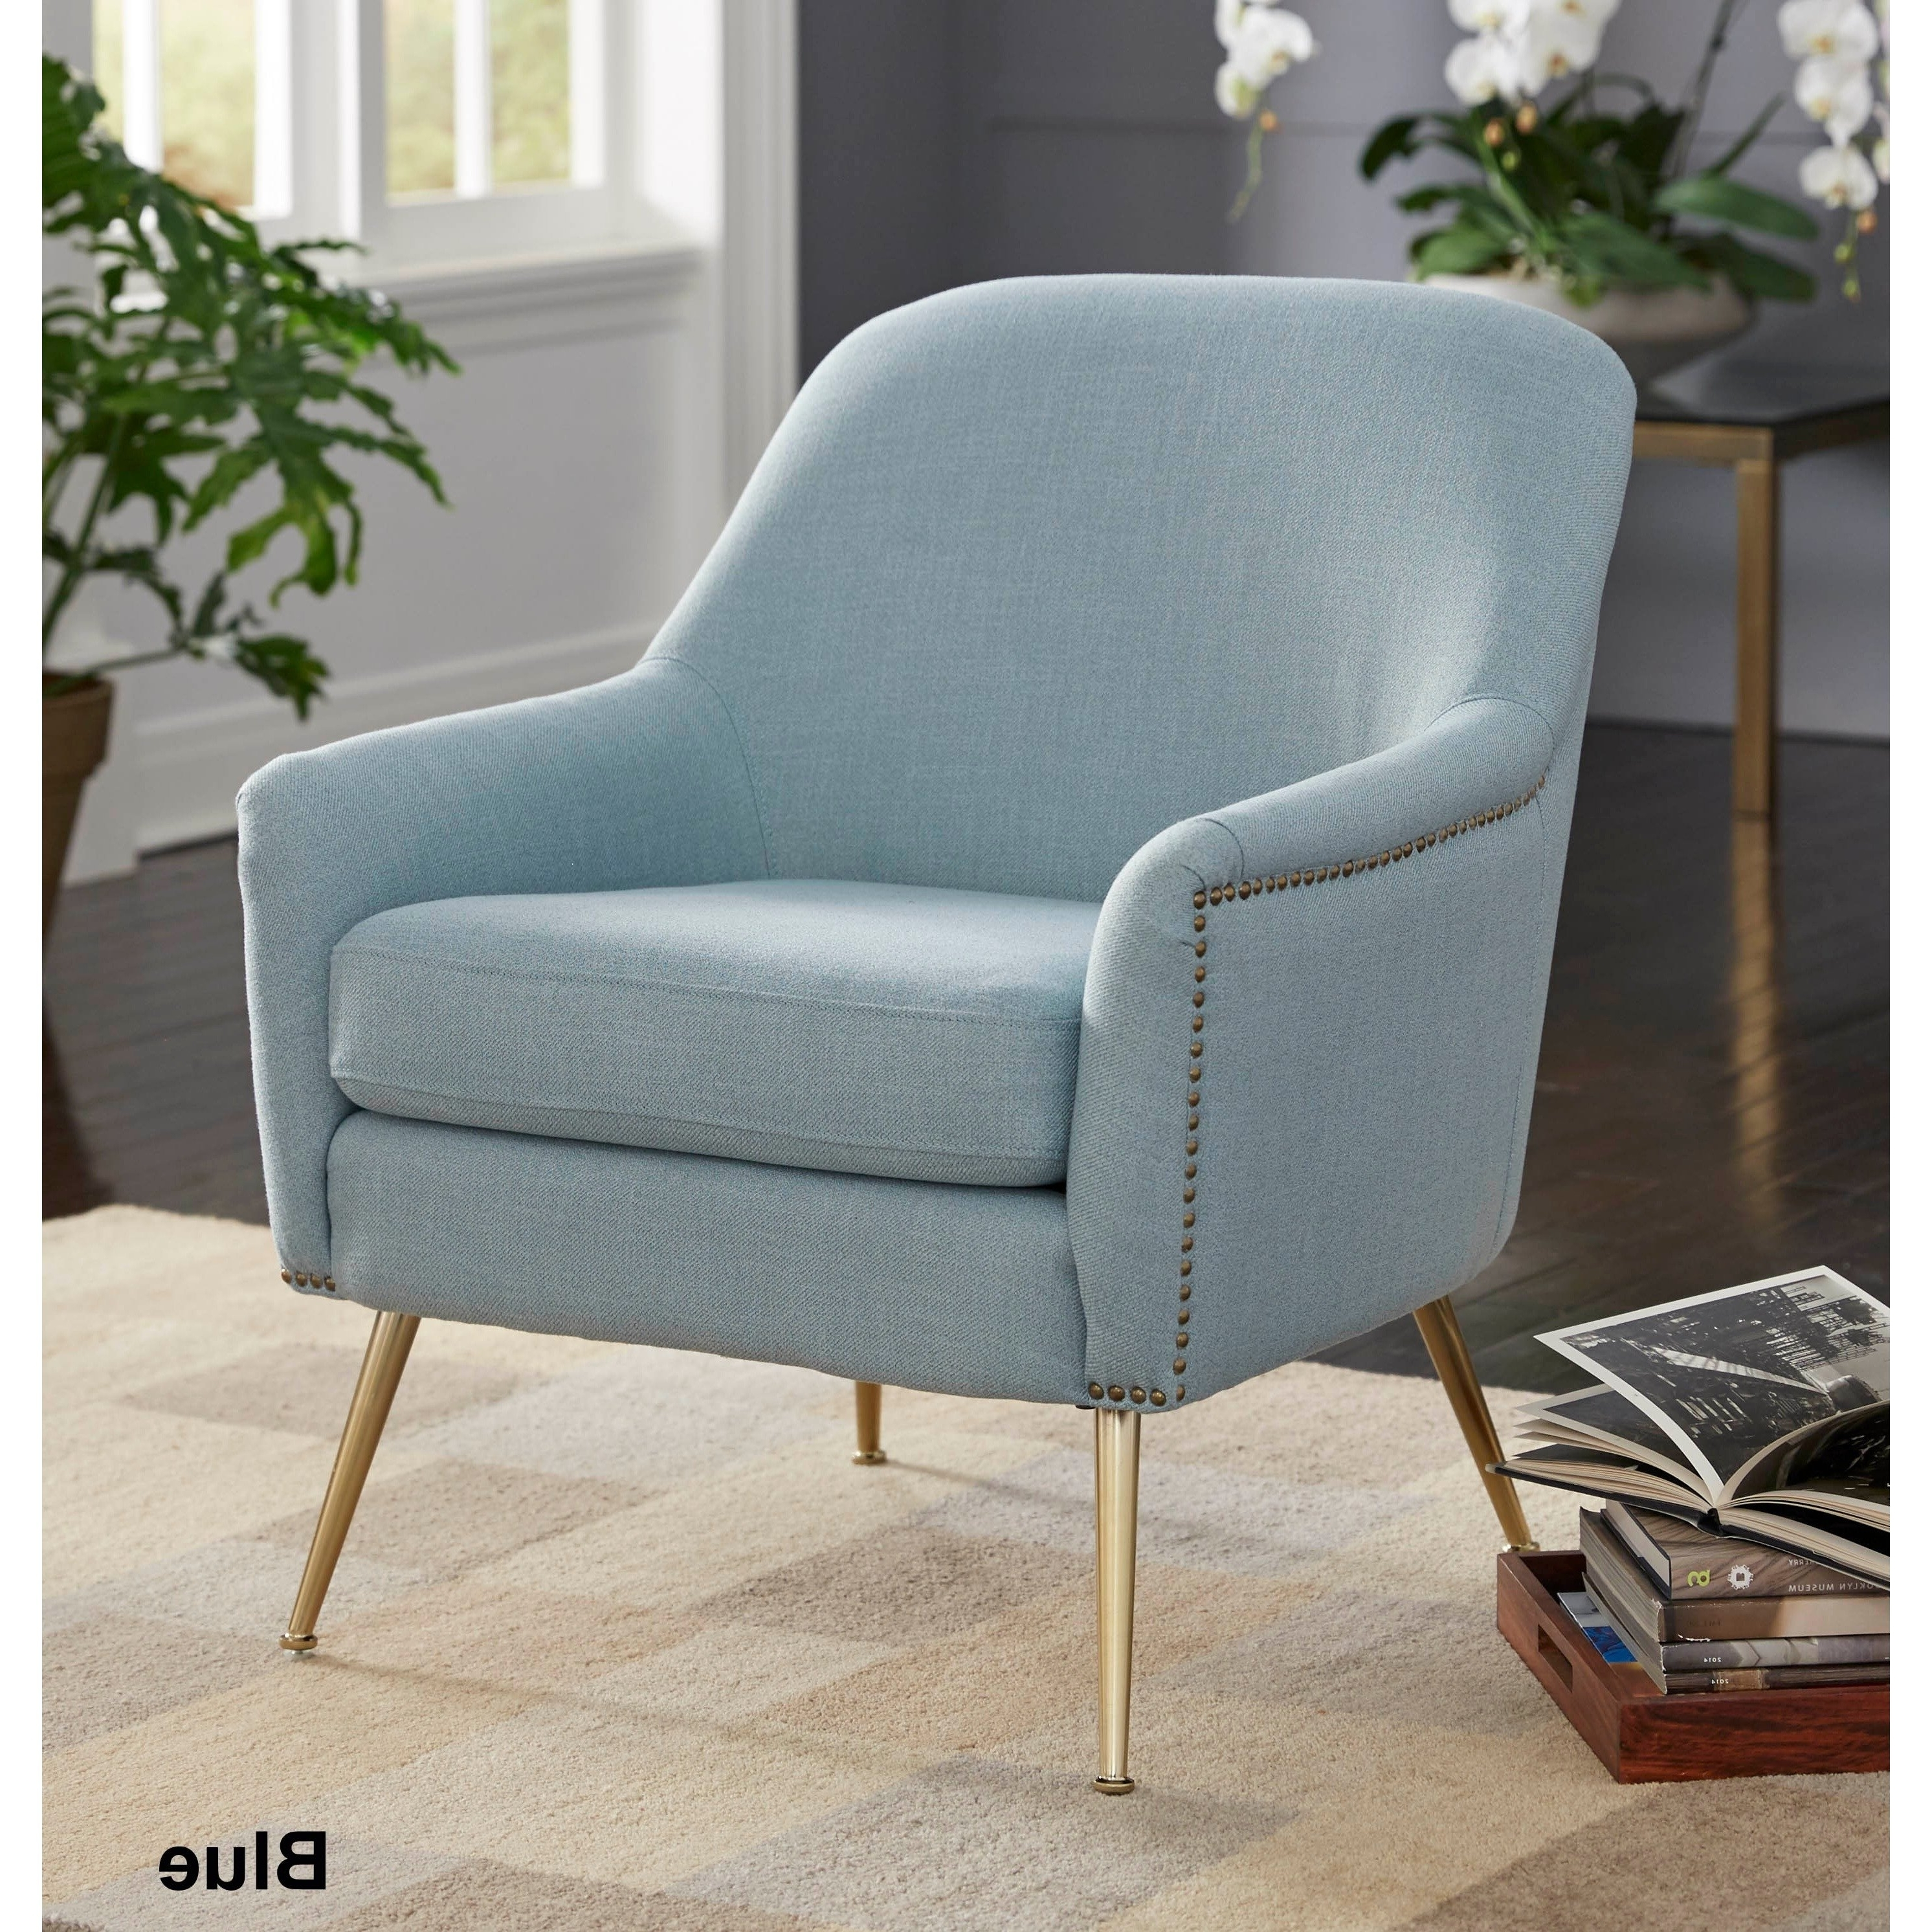 Buy Living Room Chairs Online At Overstock (View 5 of 20)